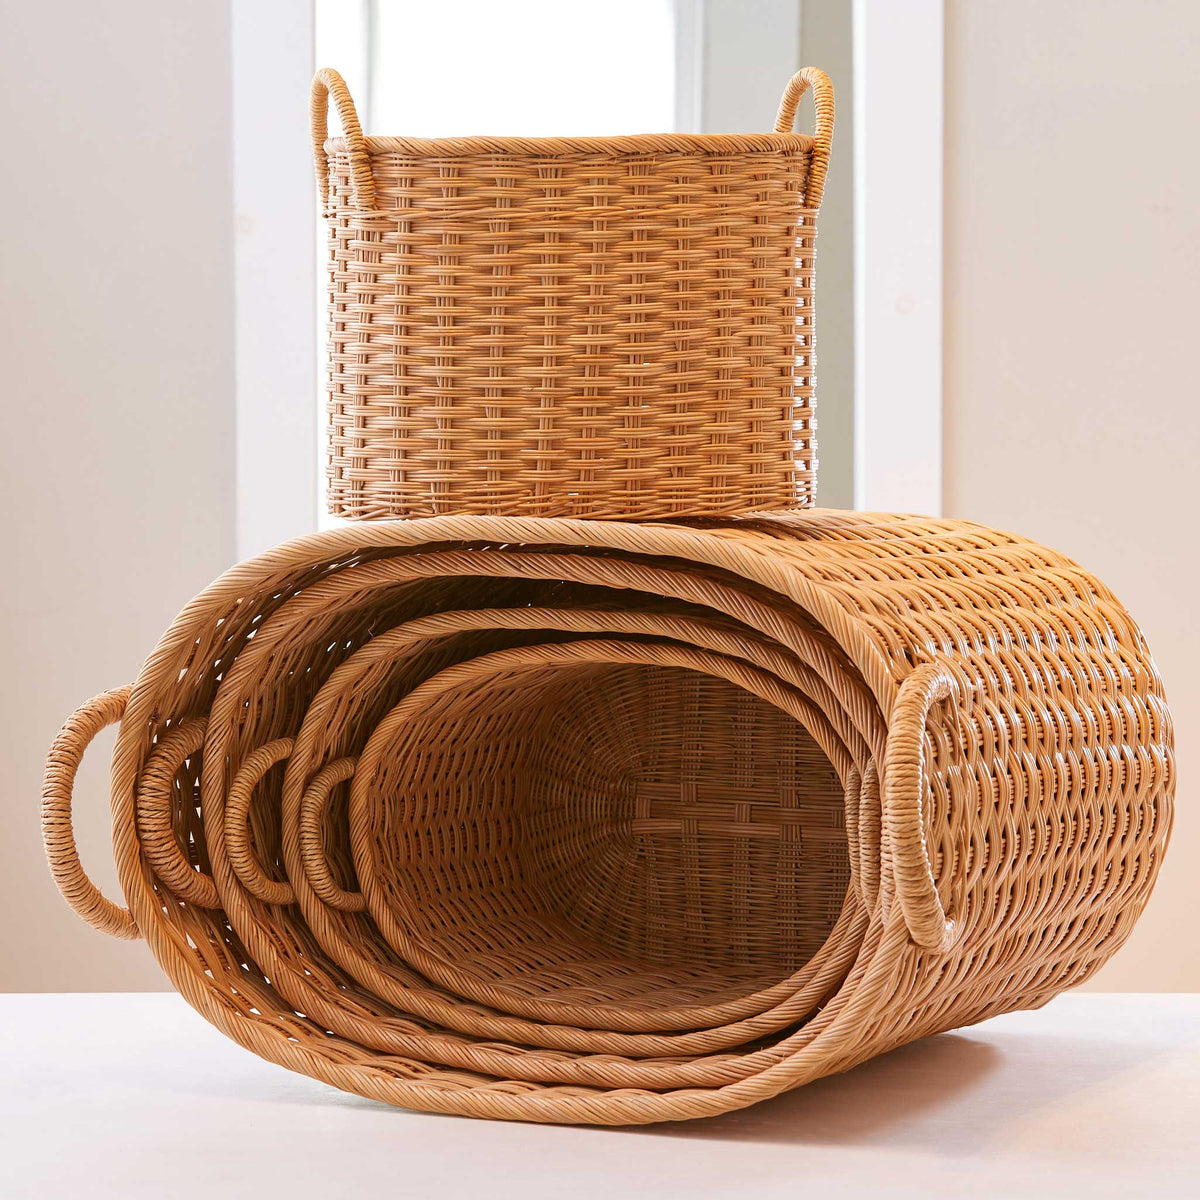 Oval rattan storage baskets with lids and handles. Perfect baskets for clothes, bathroom storage baskets, or baskets for shelves. XL, L, M, S, XS.